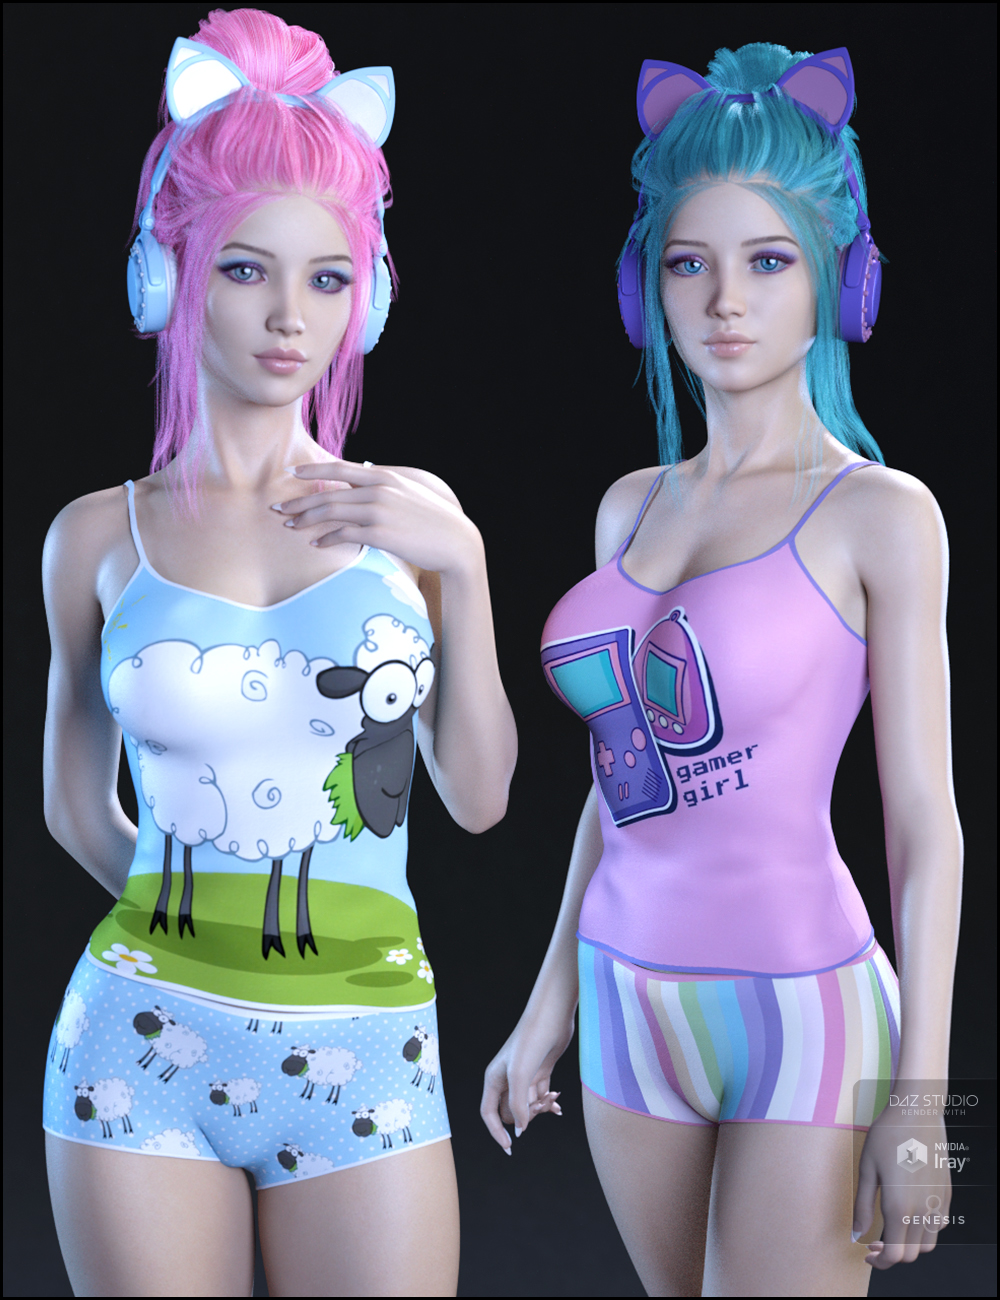 Kawaii Textures for Gamer Girl PJs and Accessories by: Jessaii, 3D Models by Daz 3D